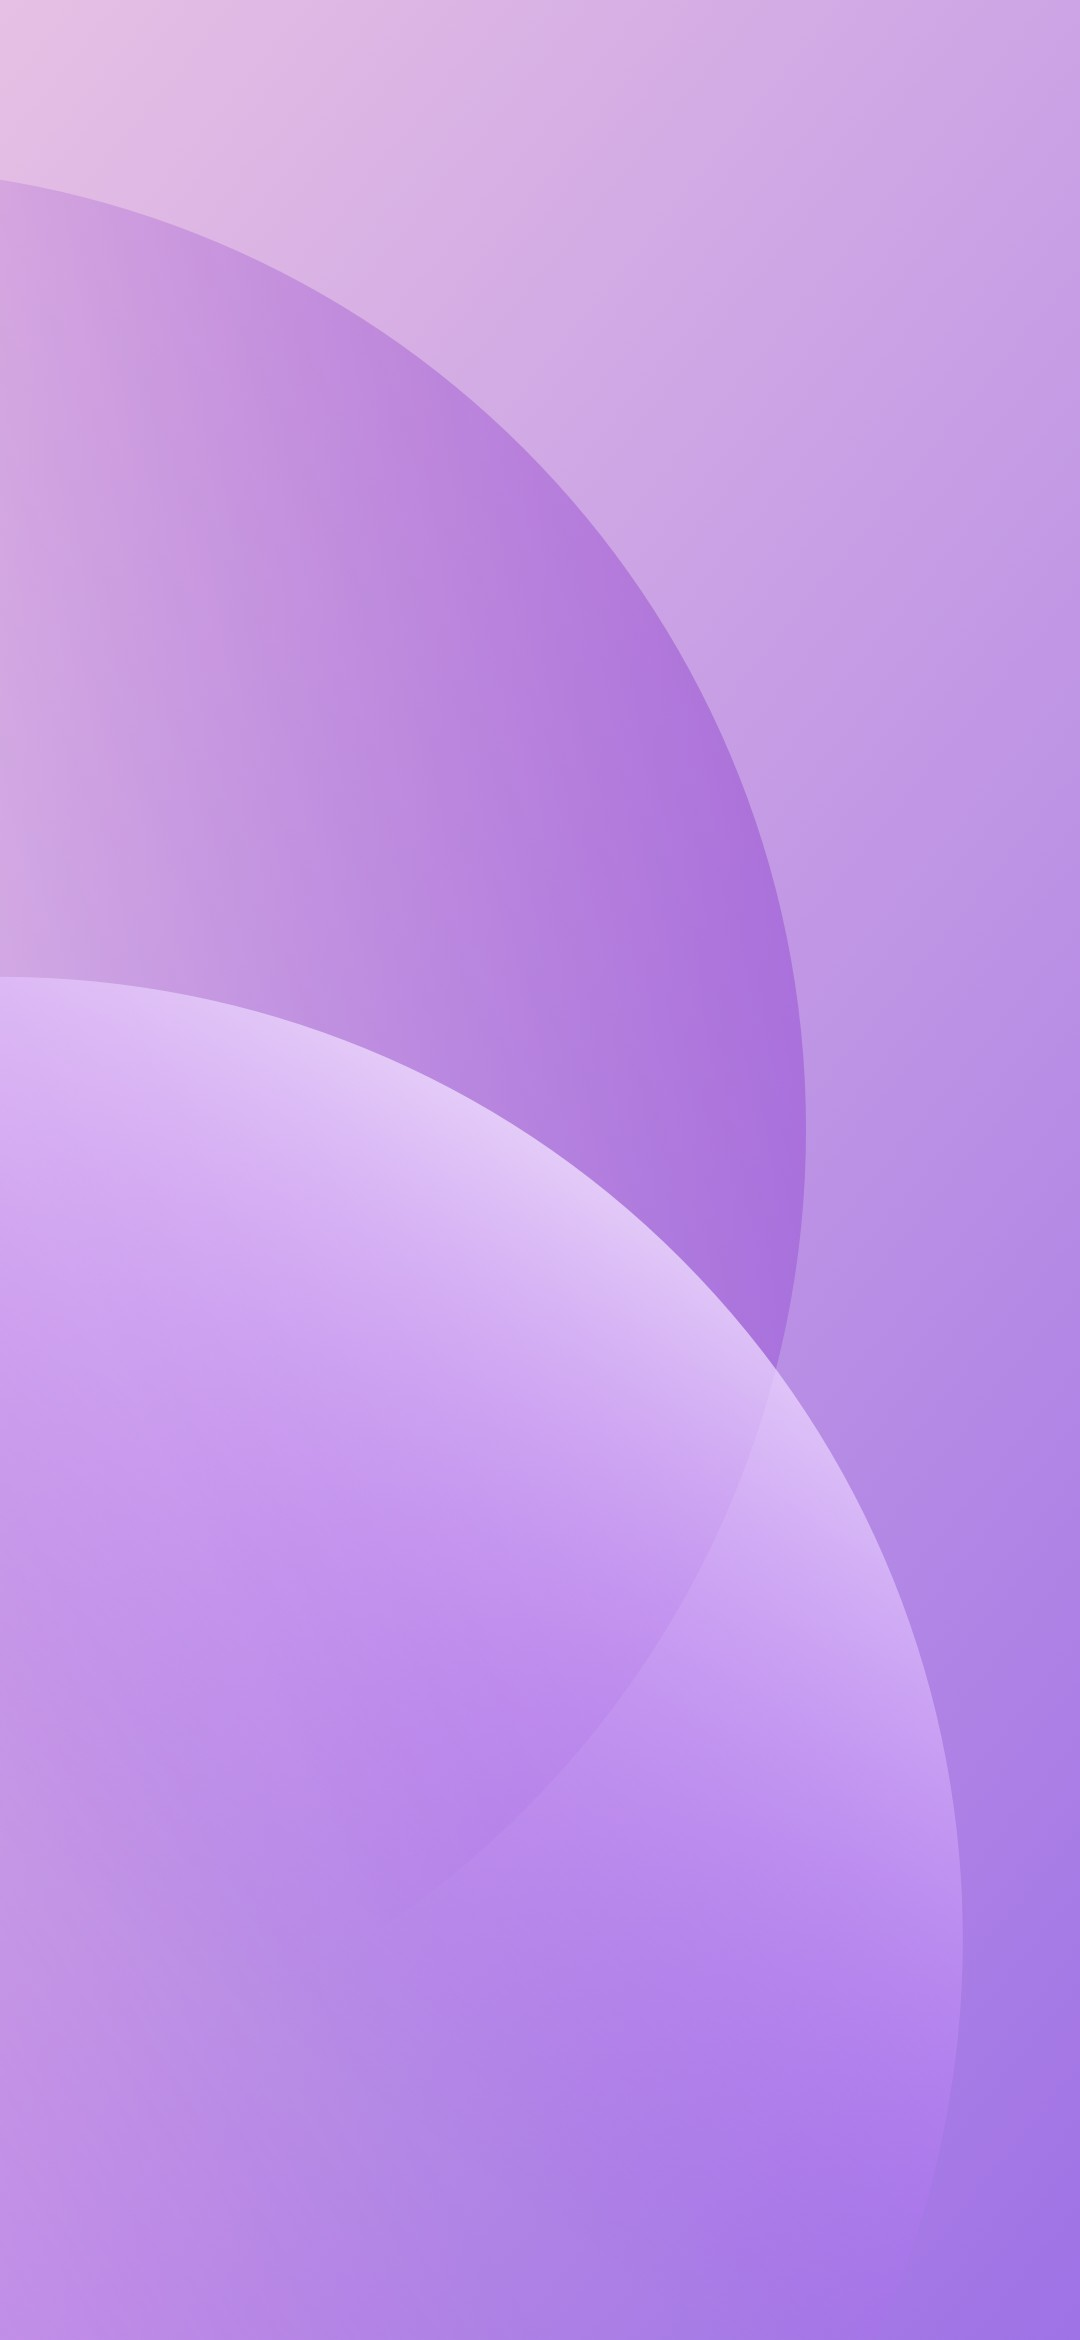 Oppo F11 Pro Stock Wallpaper 03 1080x2340 1